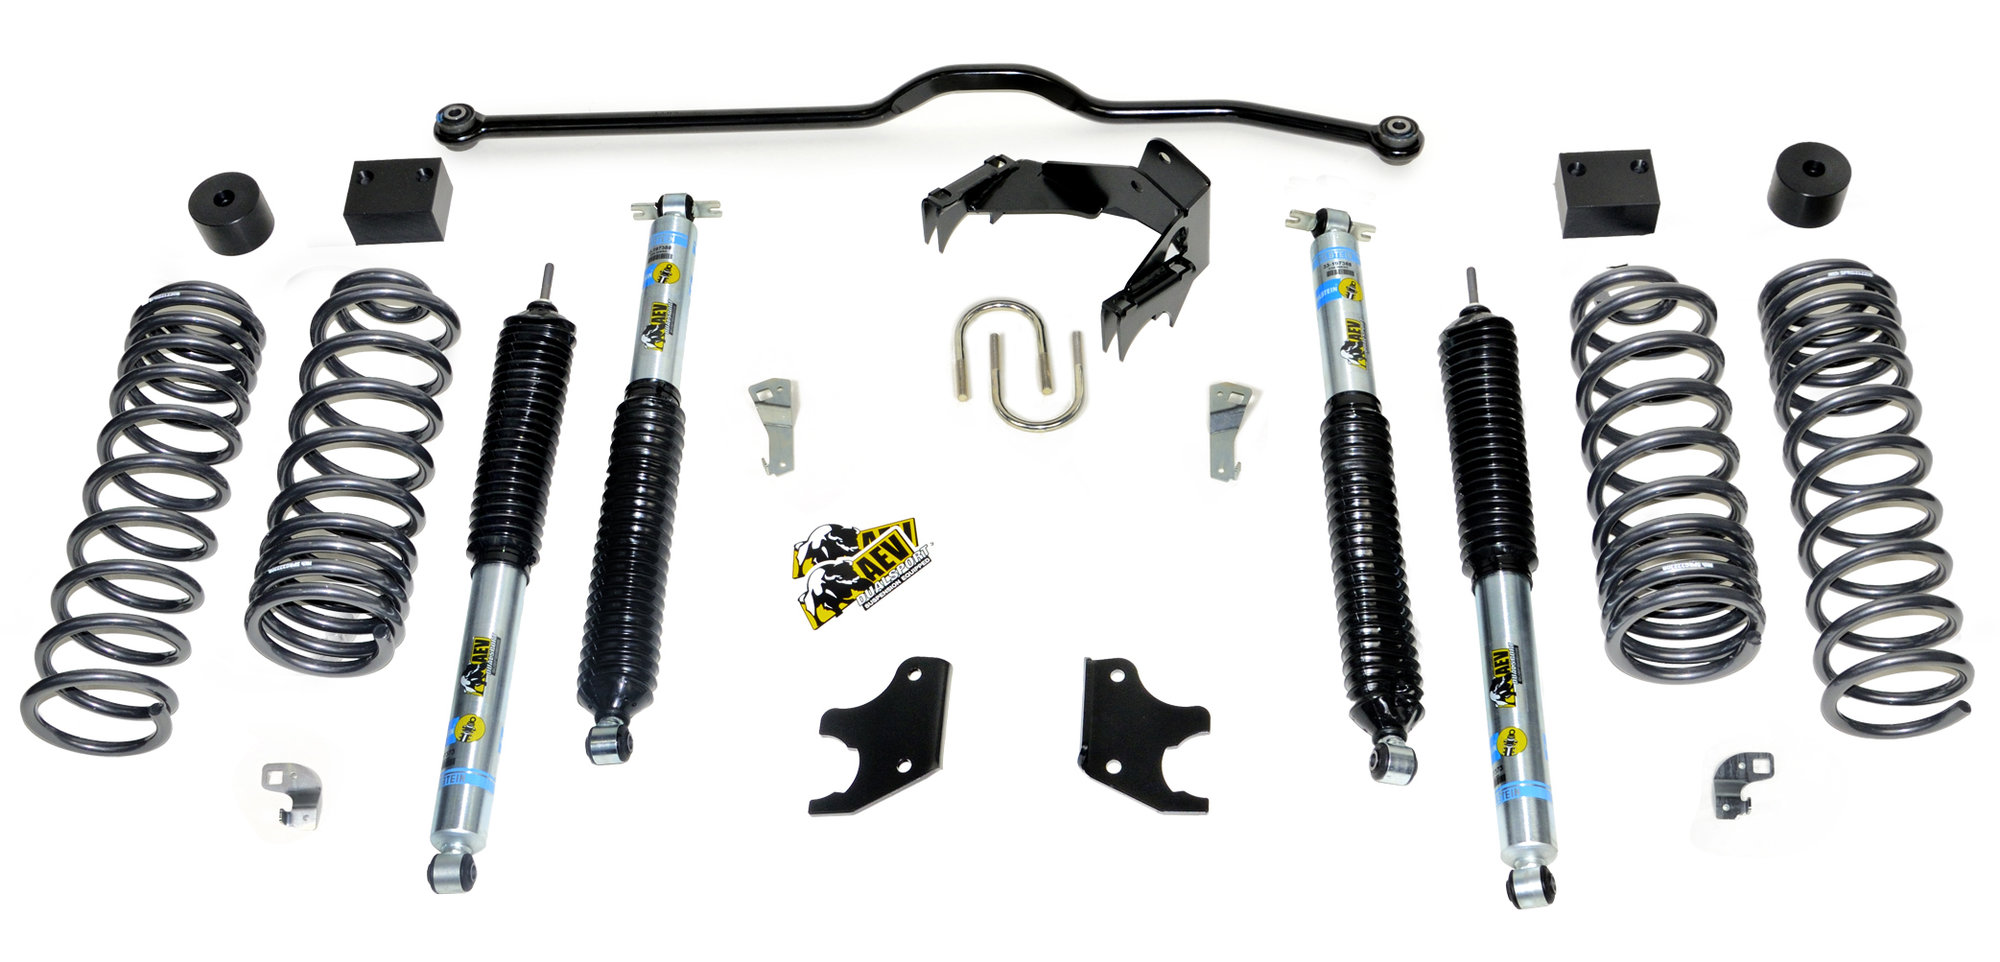 Aev 2 5 Dualsport Xt Suspension System For 07 18 Jeep